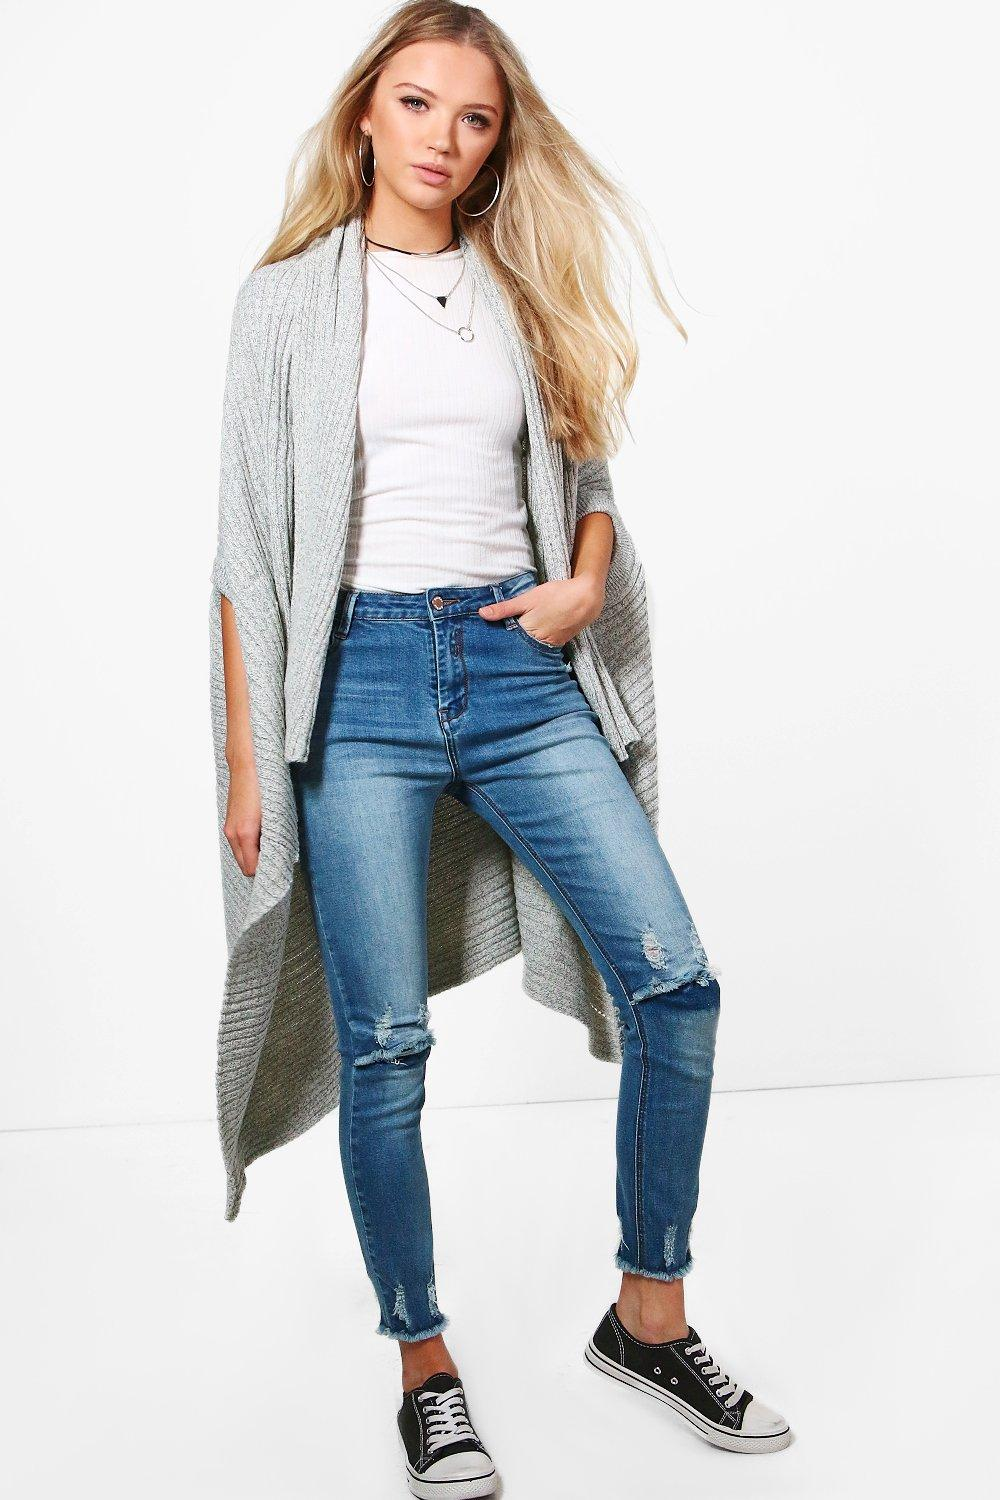 Gracie Waterfall Cardigan | Boohoo